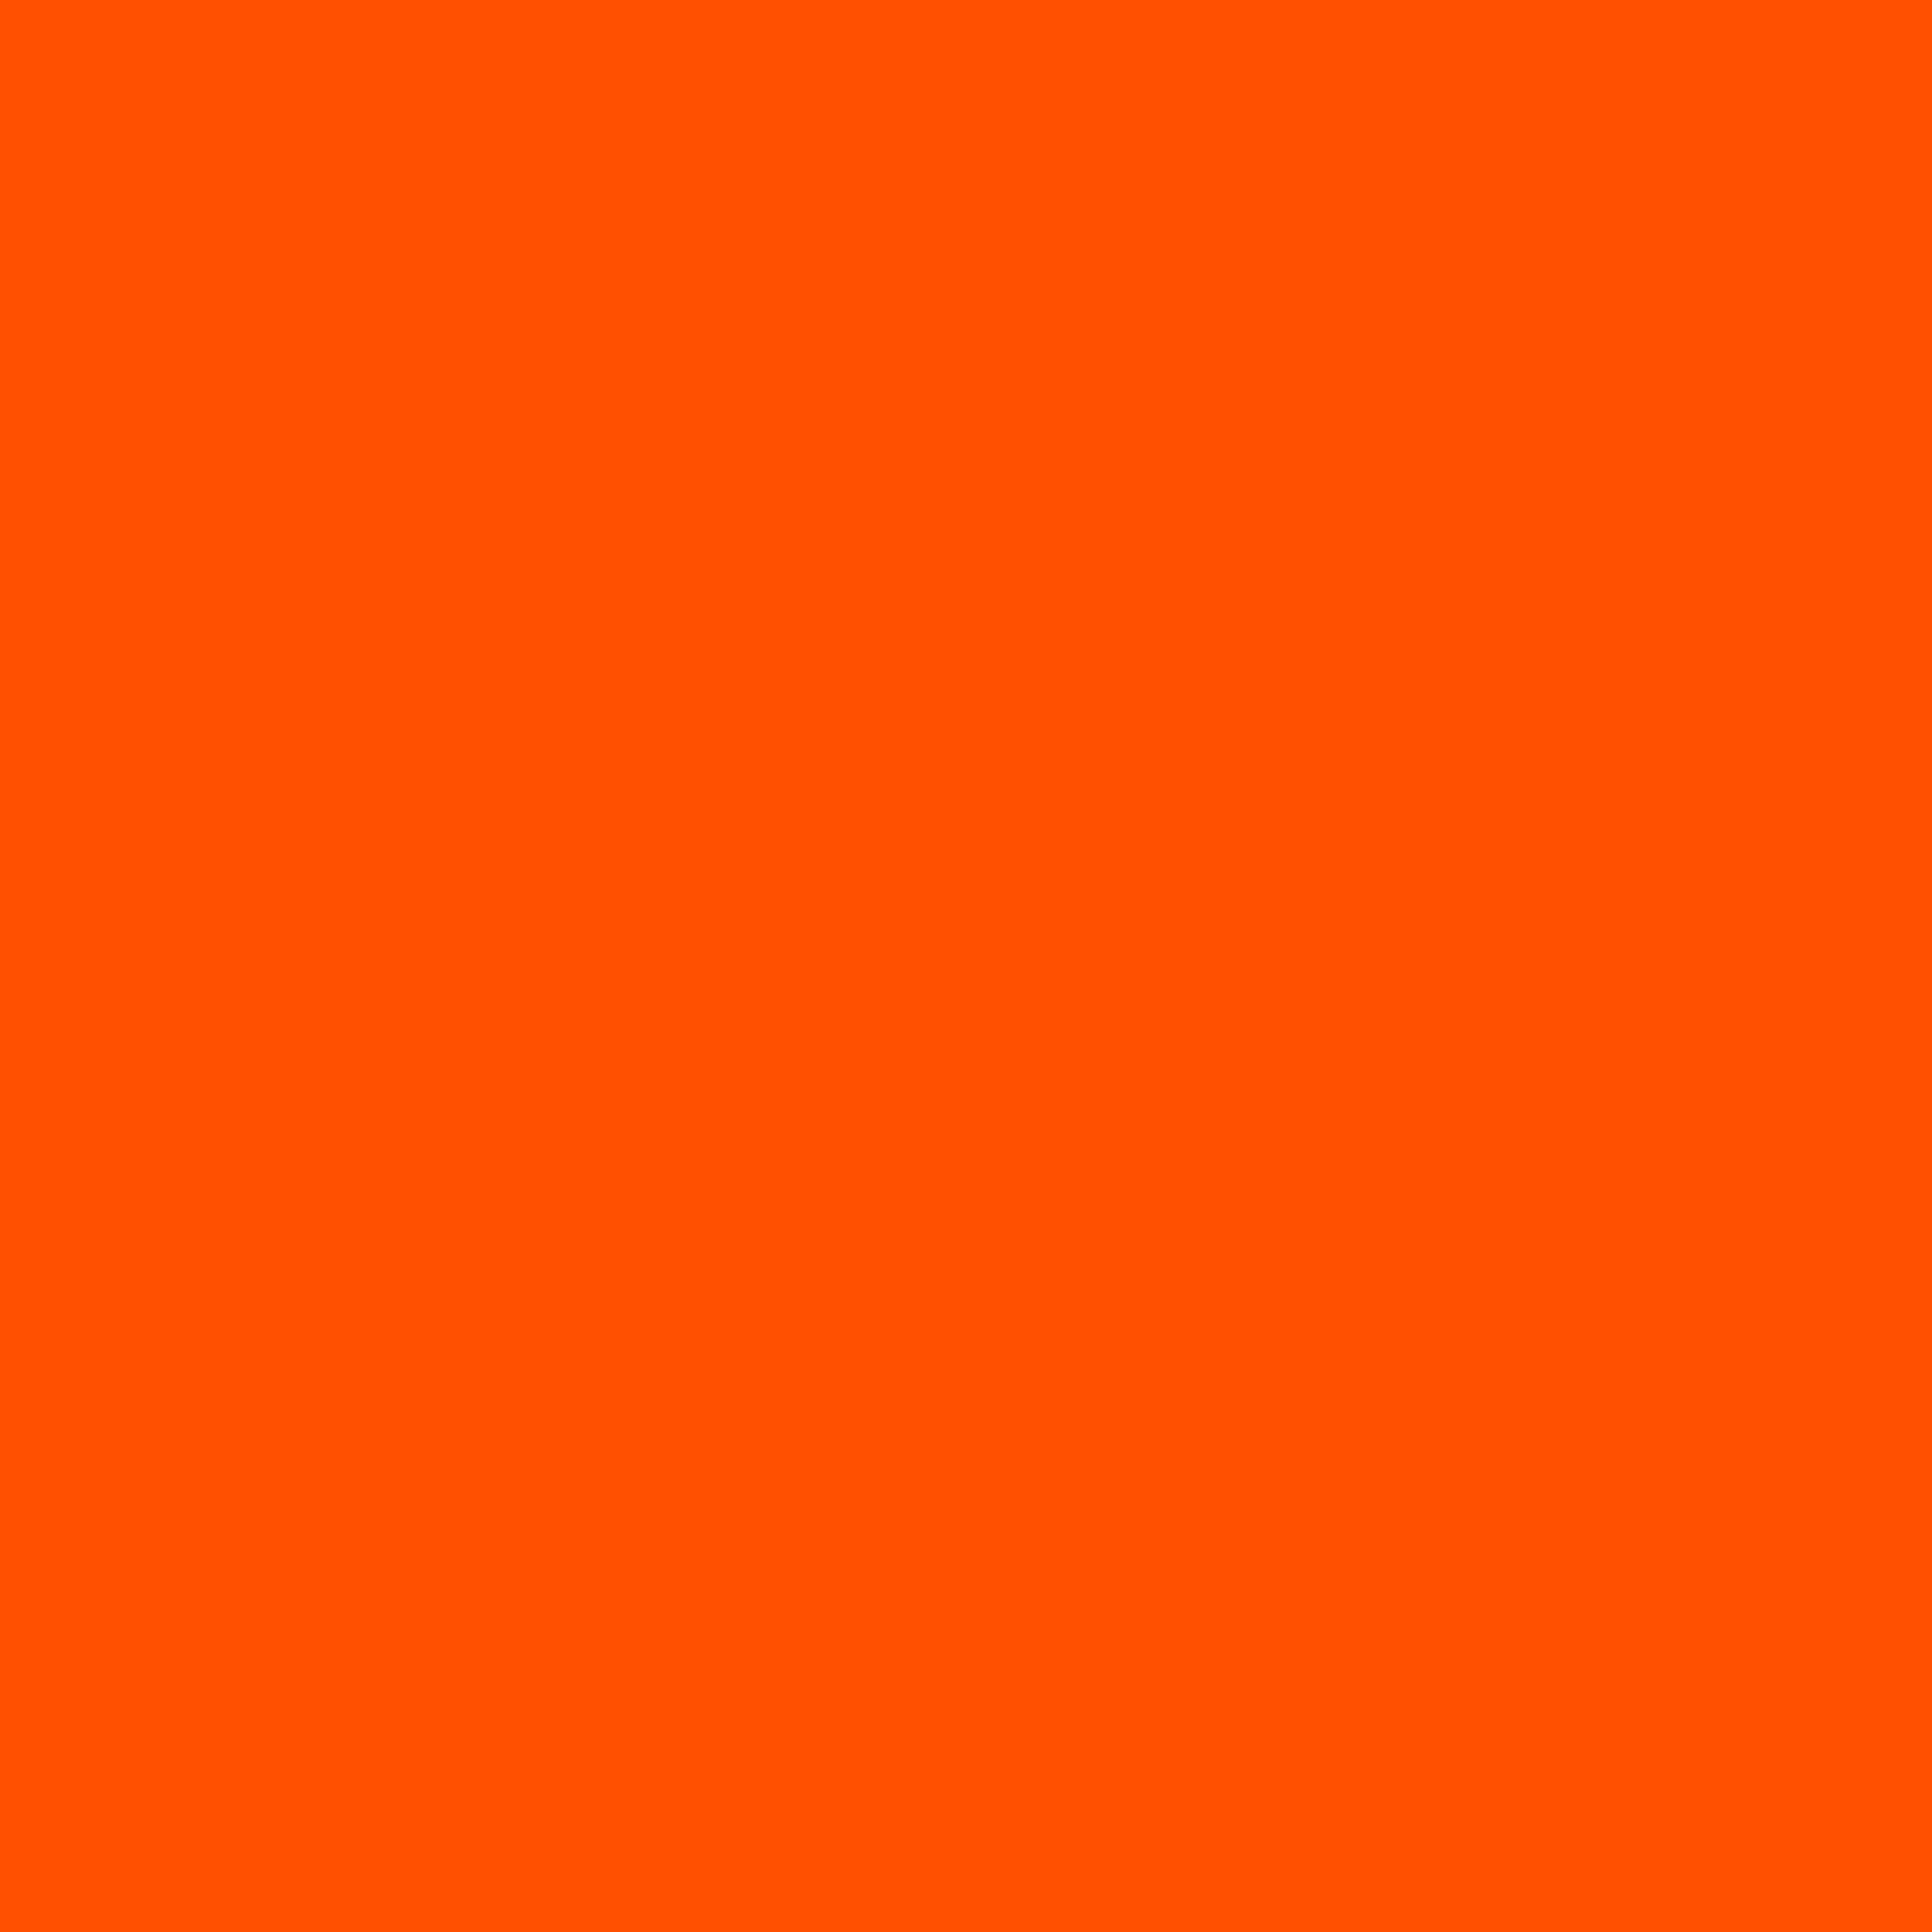 3600x3600 International Orange Aerospace Solid Color Background